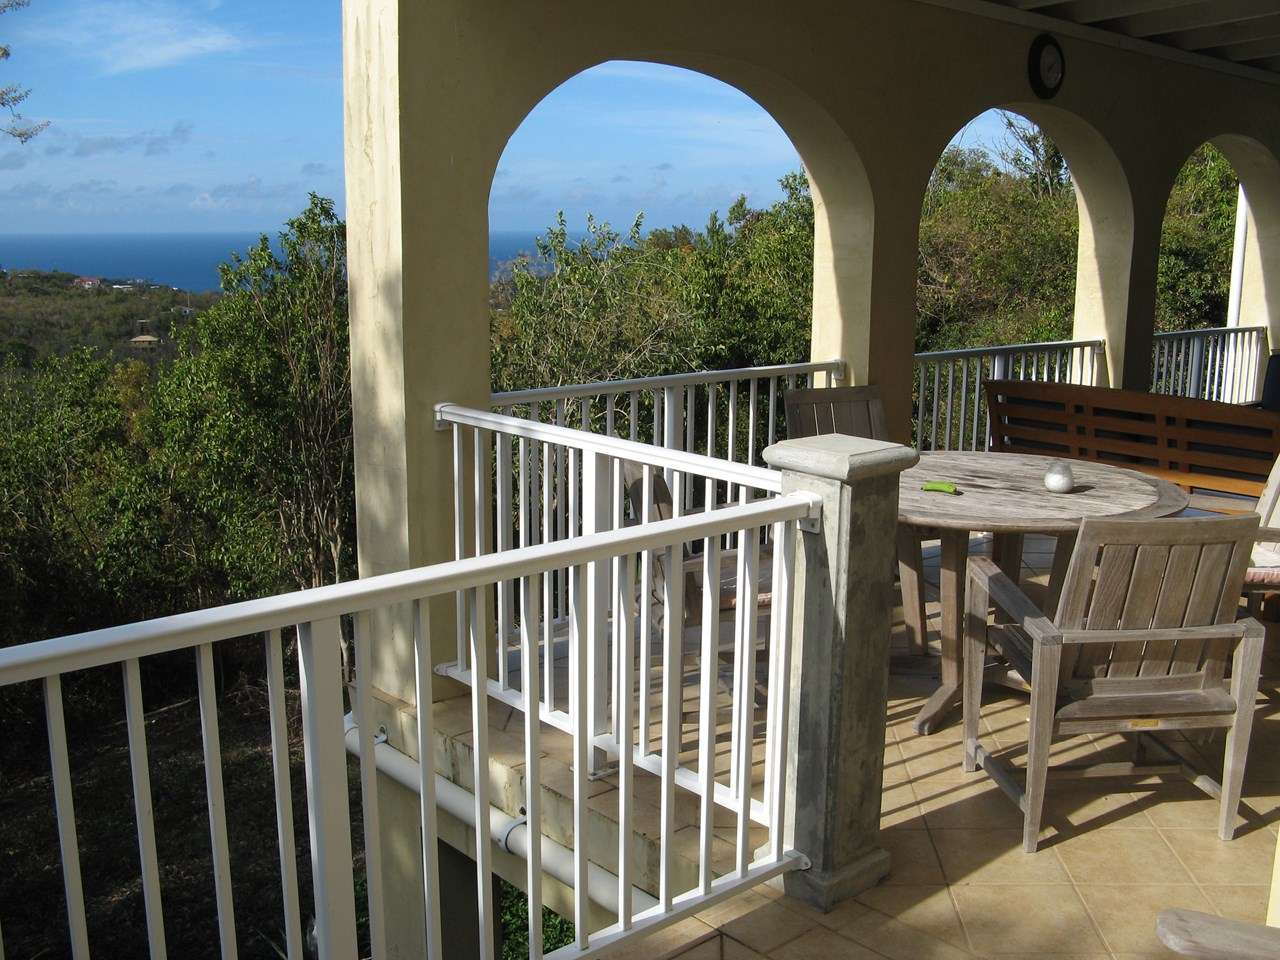 Terrace at Villa CT TRA (Caneel Trailside Cottage) at Catherineberg, St. John, Family-Friendly, Pool, 2 Bedroom, 2 Bathroom, WiFi, WIMCO Villas